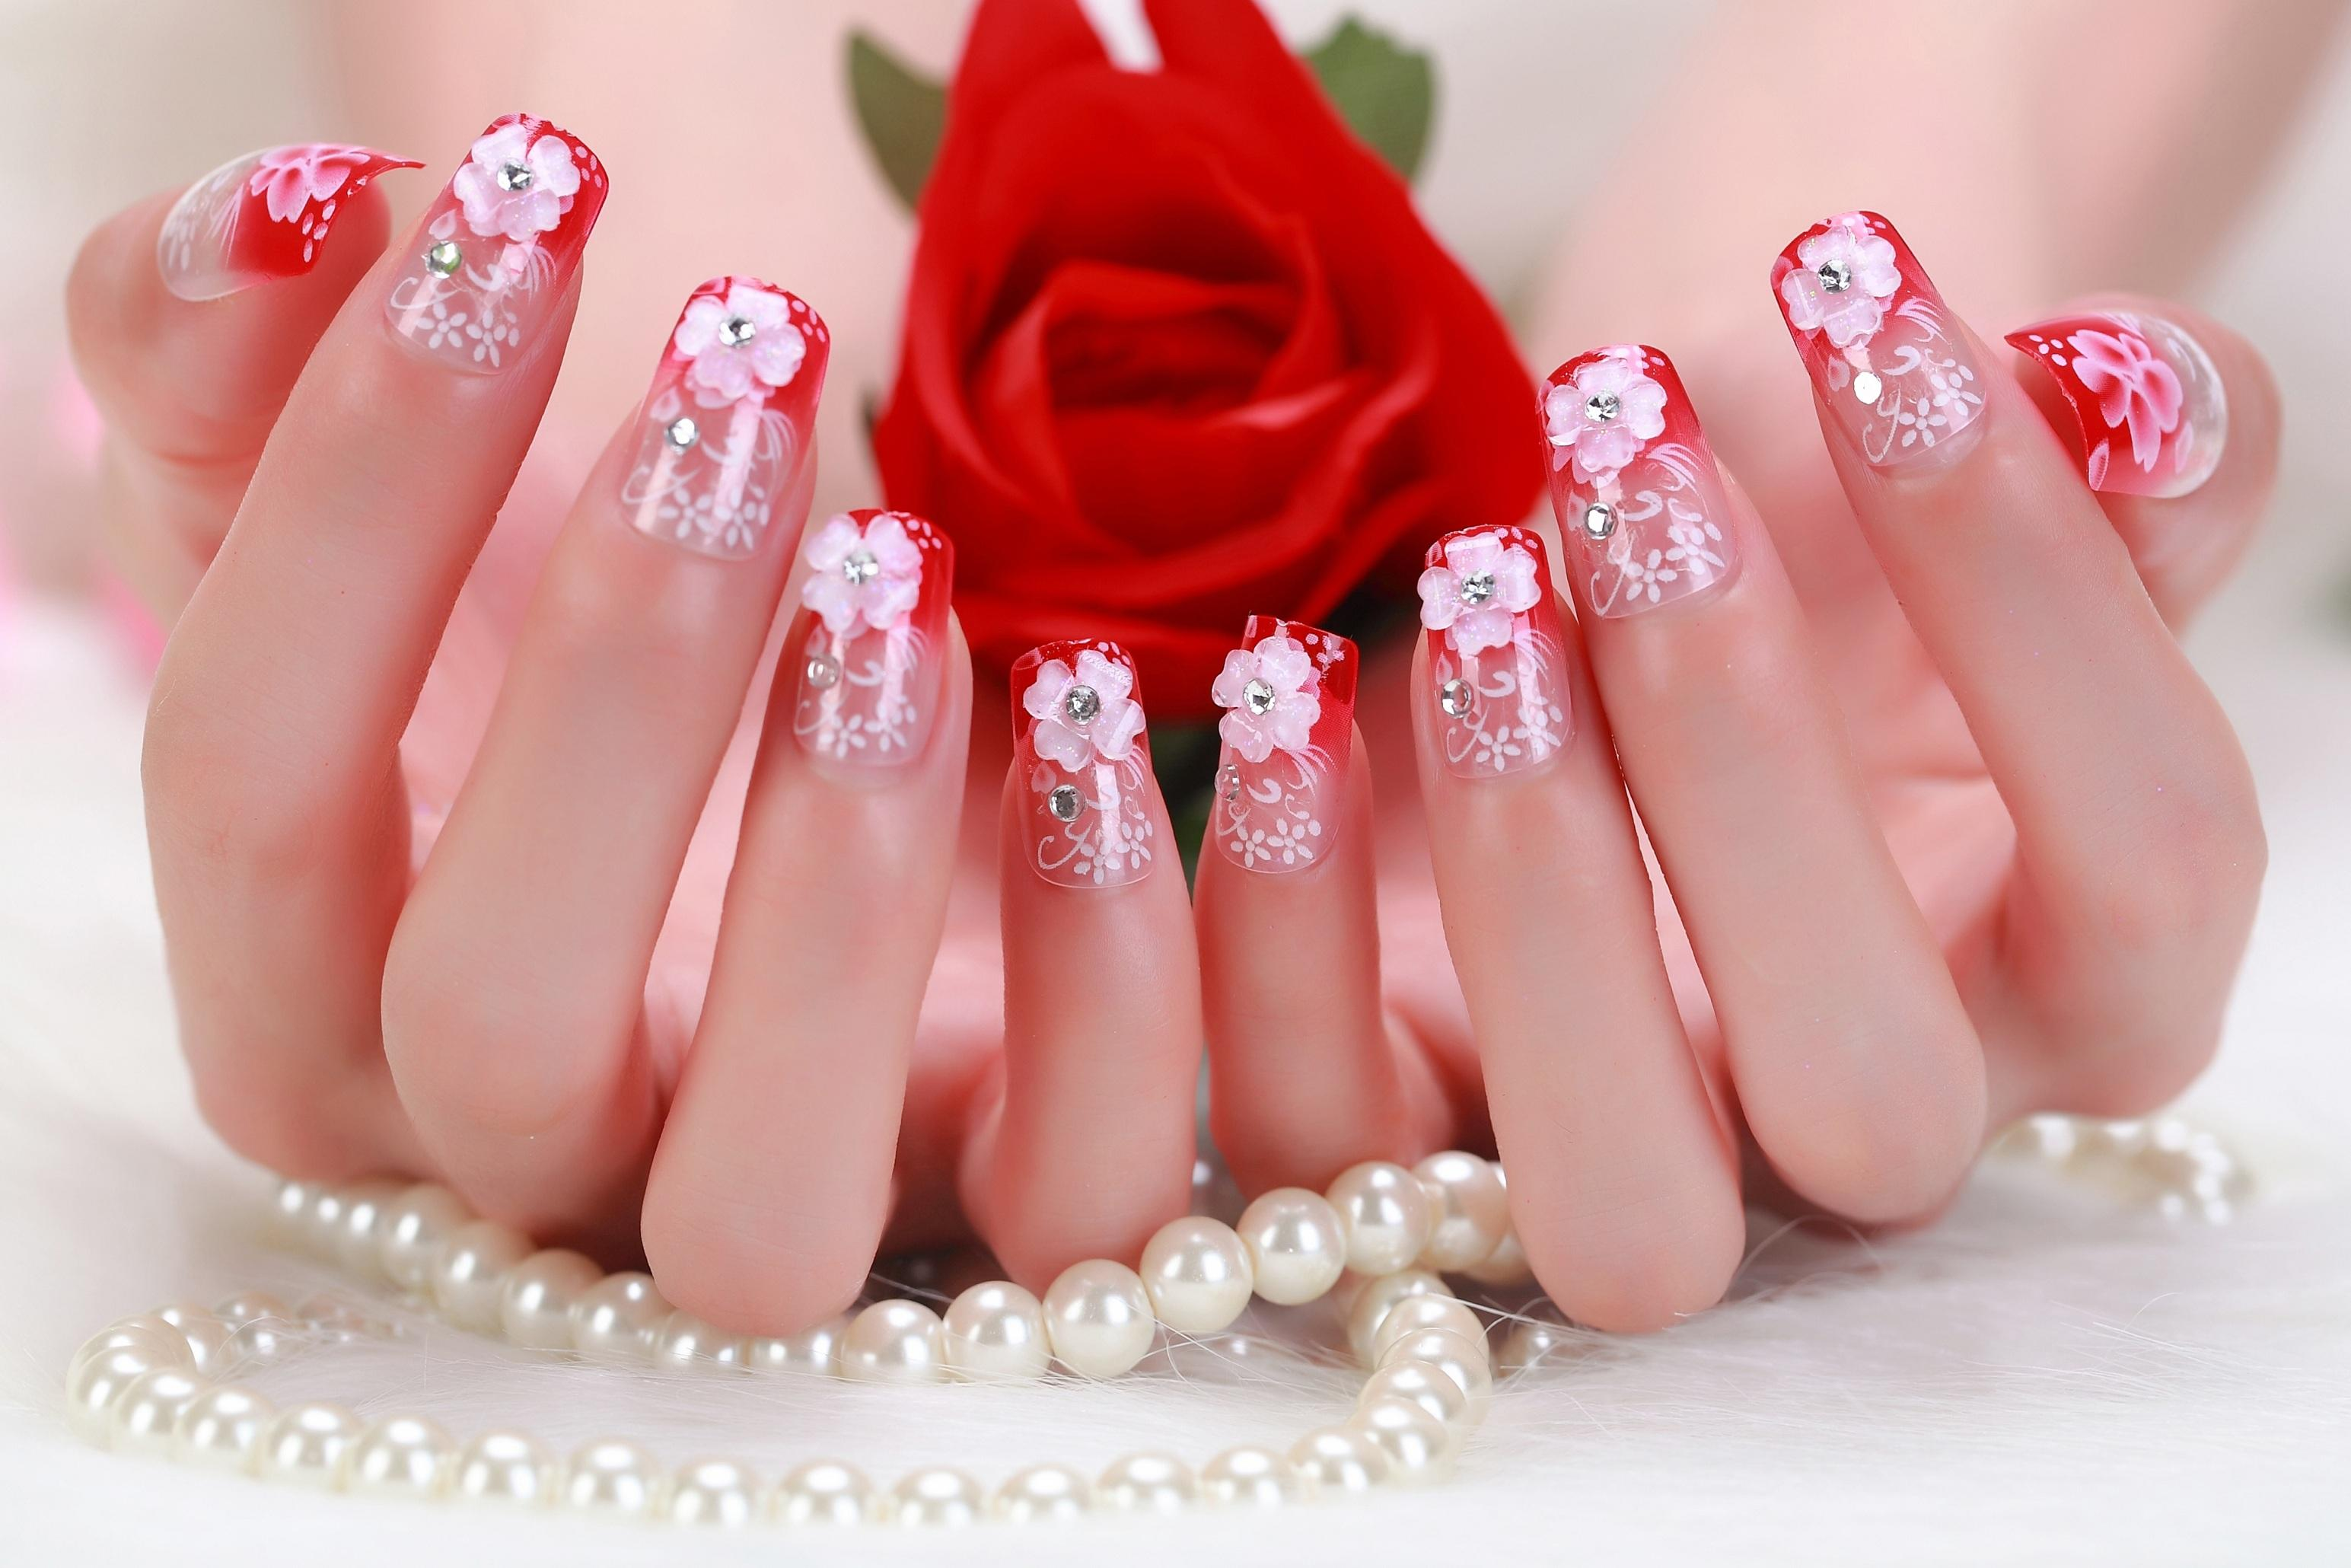 Kids False Nails French Stiletto Fake Nail Tips 100x Full Cover Acrylic Artificial Lady GagaS Harajuku Ongle 0192 Online Gel